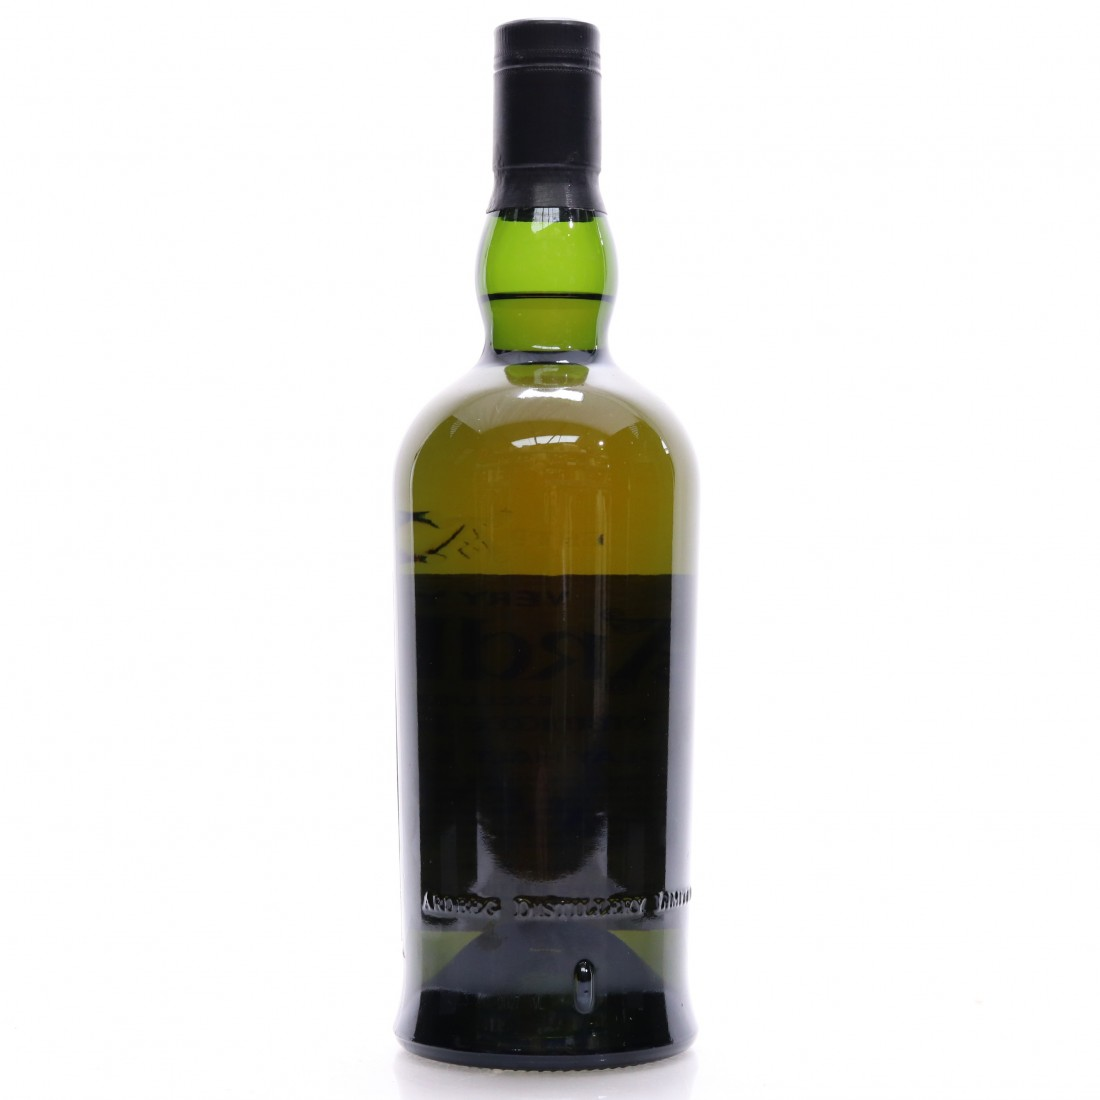 Ardbeg 1997 Very Young For Discussion